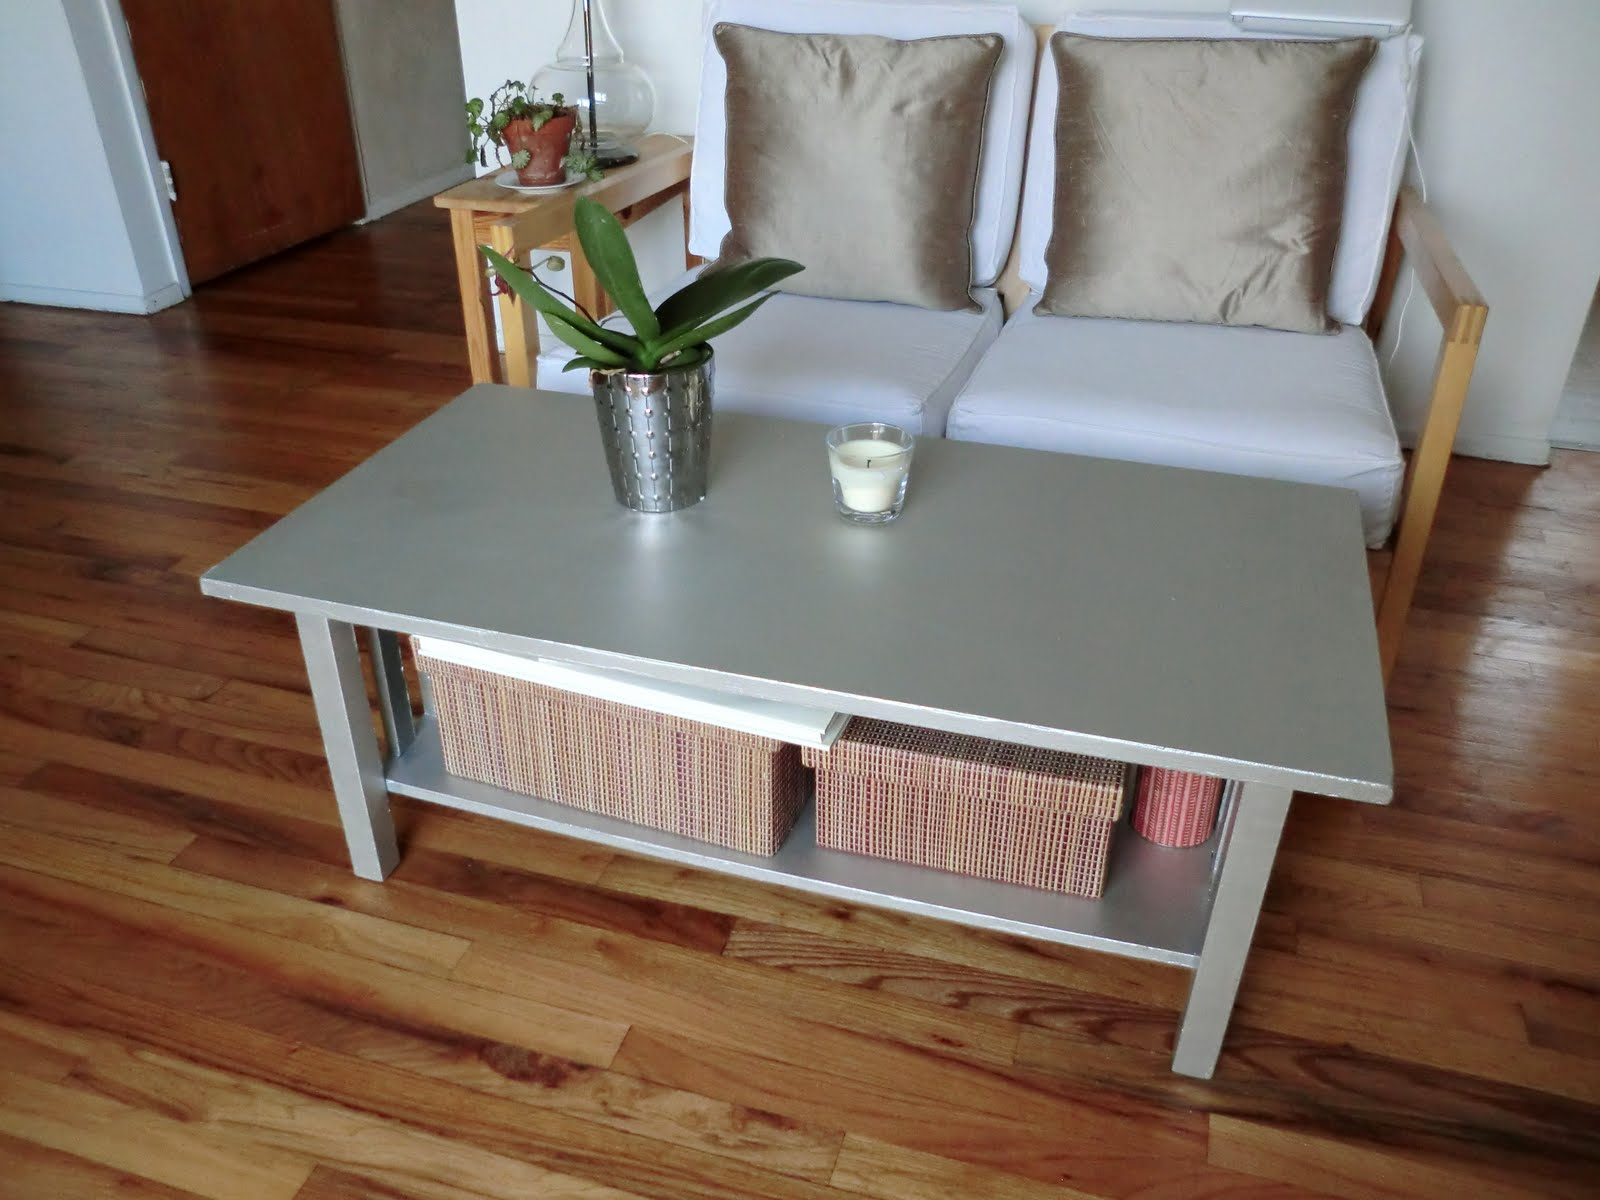 According to Lia: DIY Coffee Table Upgrade